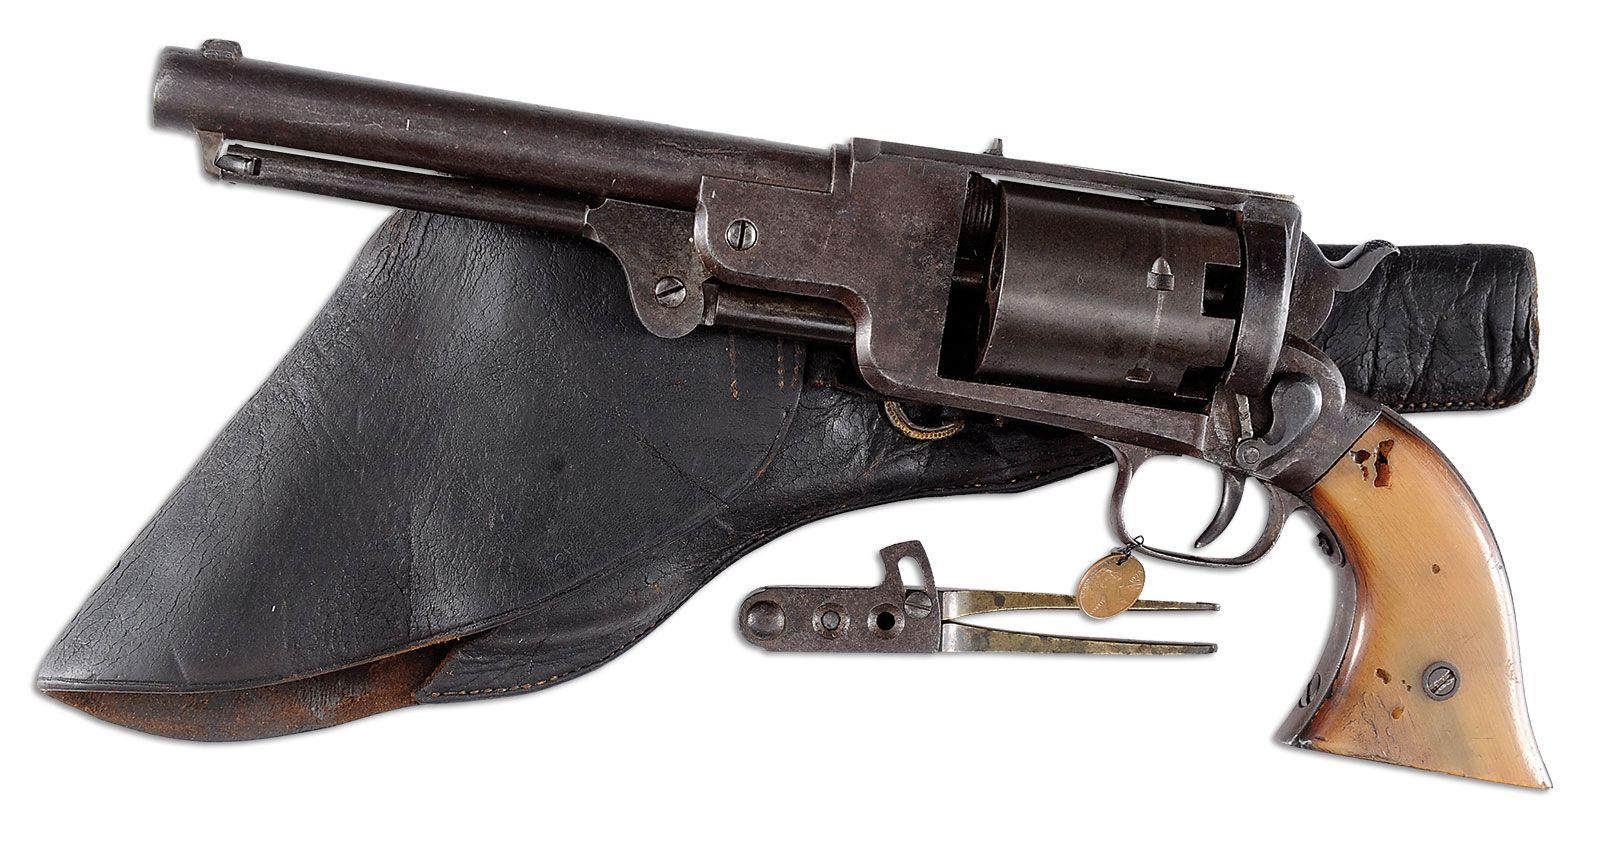 William floppin bill cantrell s remington model 1875 single action army revolver pinterest revolvers guns and weapons